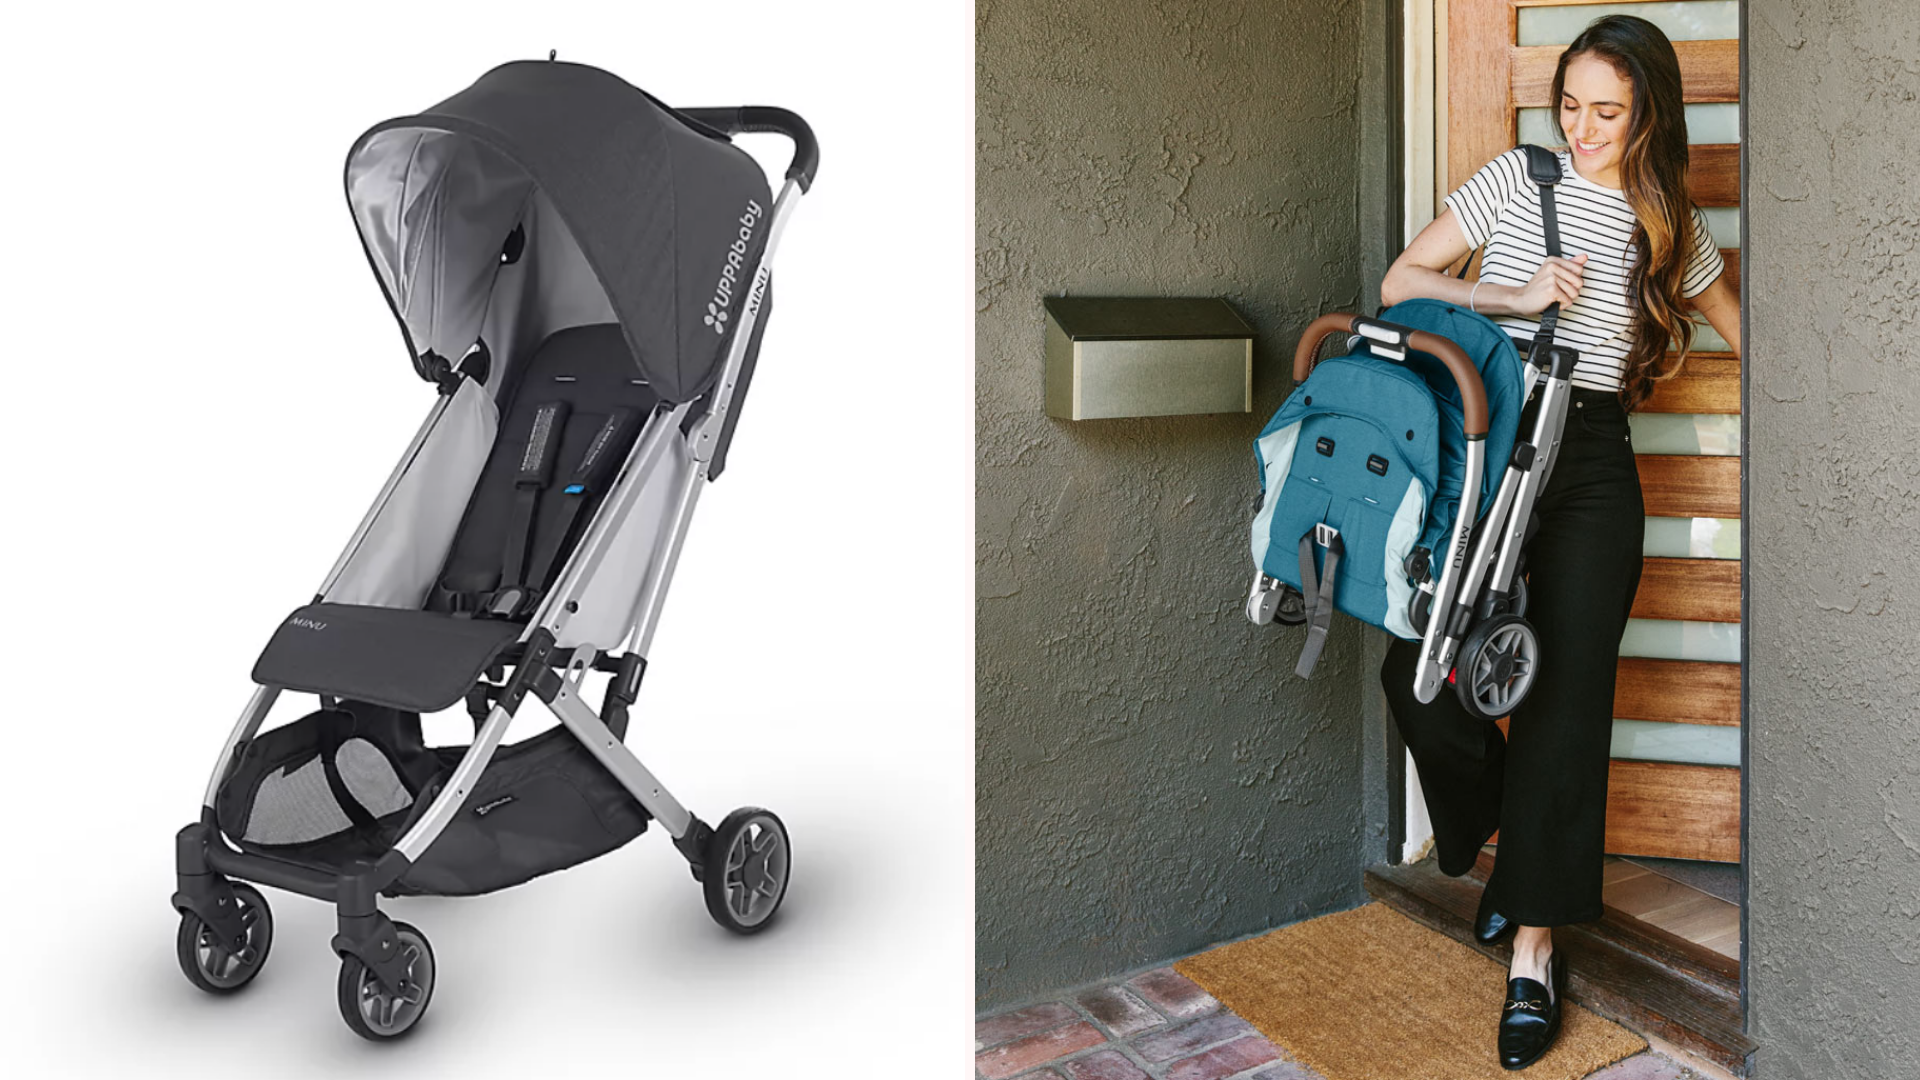 A woman carrying a UppaBaby compact stroller.